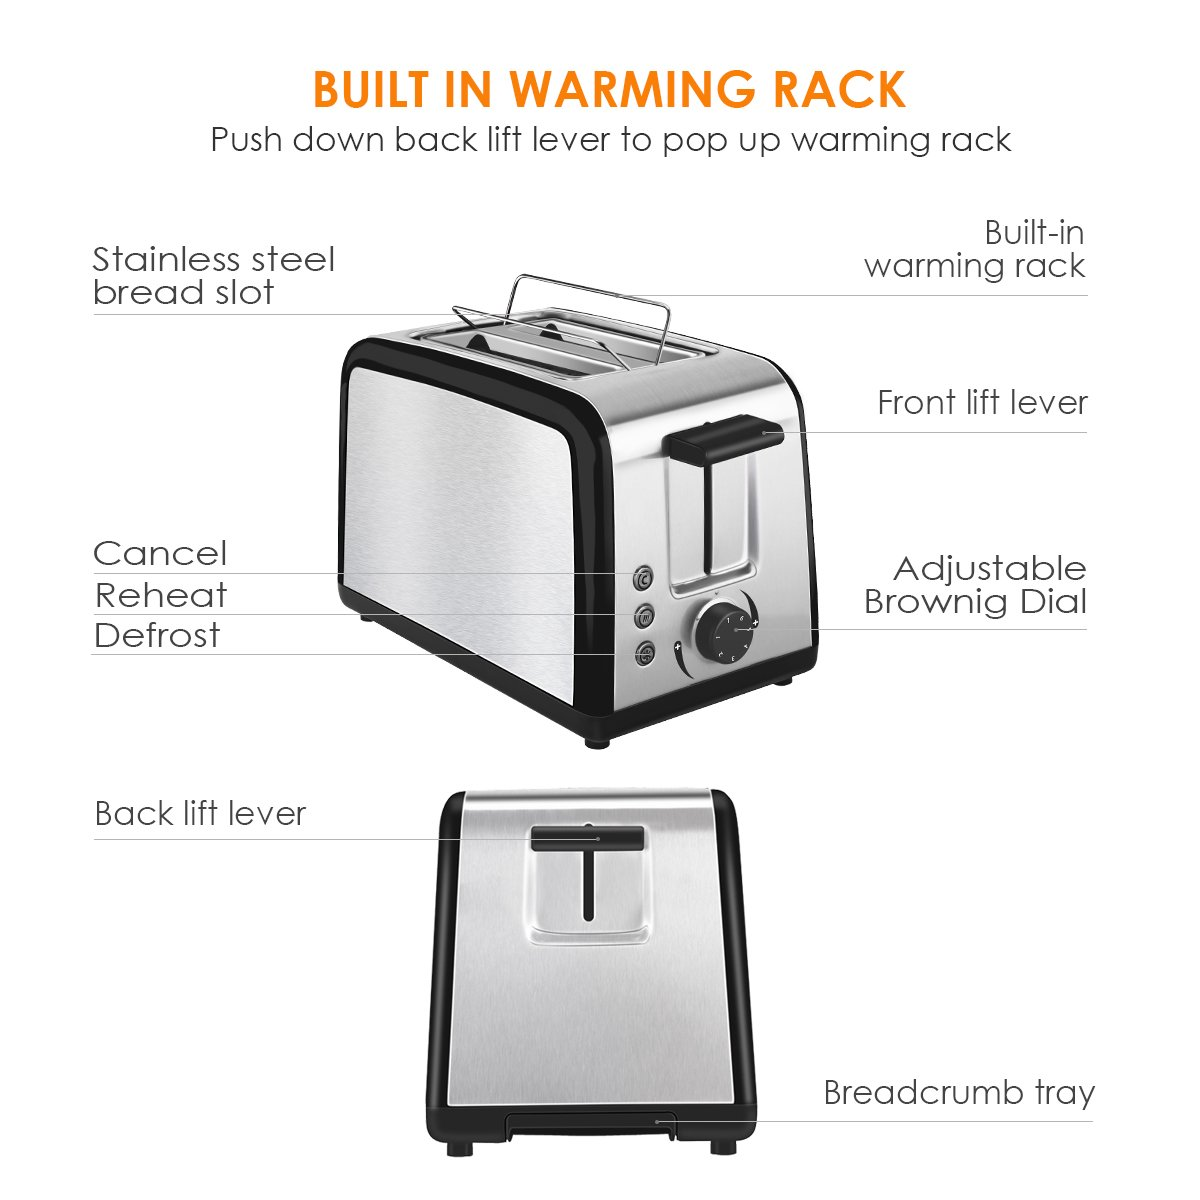 Toaster 2 Slice Warming Rack Brushed Stainless Steel for Breakfast Bread Toasters Best Rated Has Defrost Reheat Cancel Button Removable Crumb Tray By KEEMO by Keemo (Image #5)